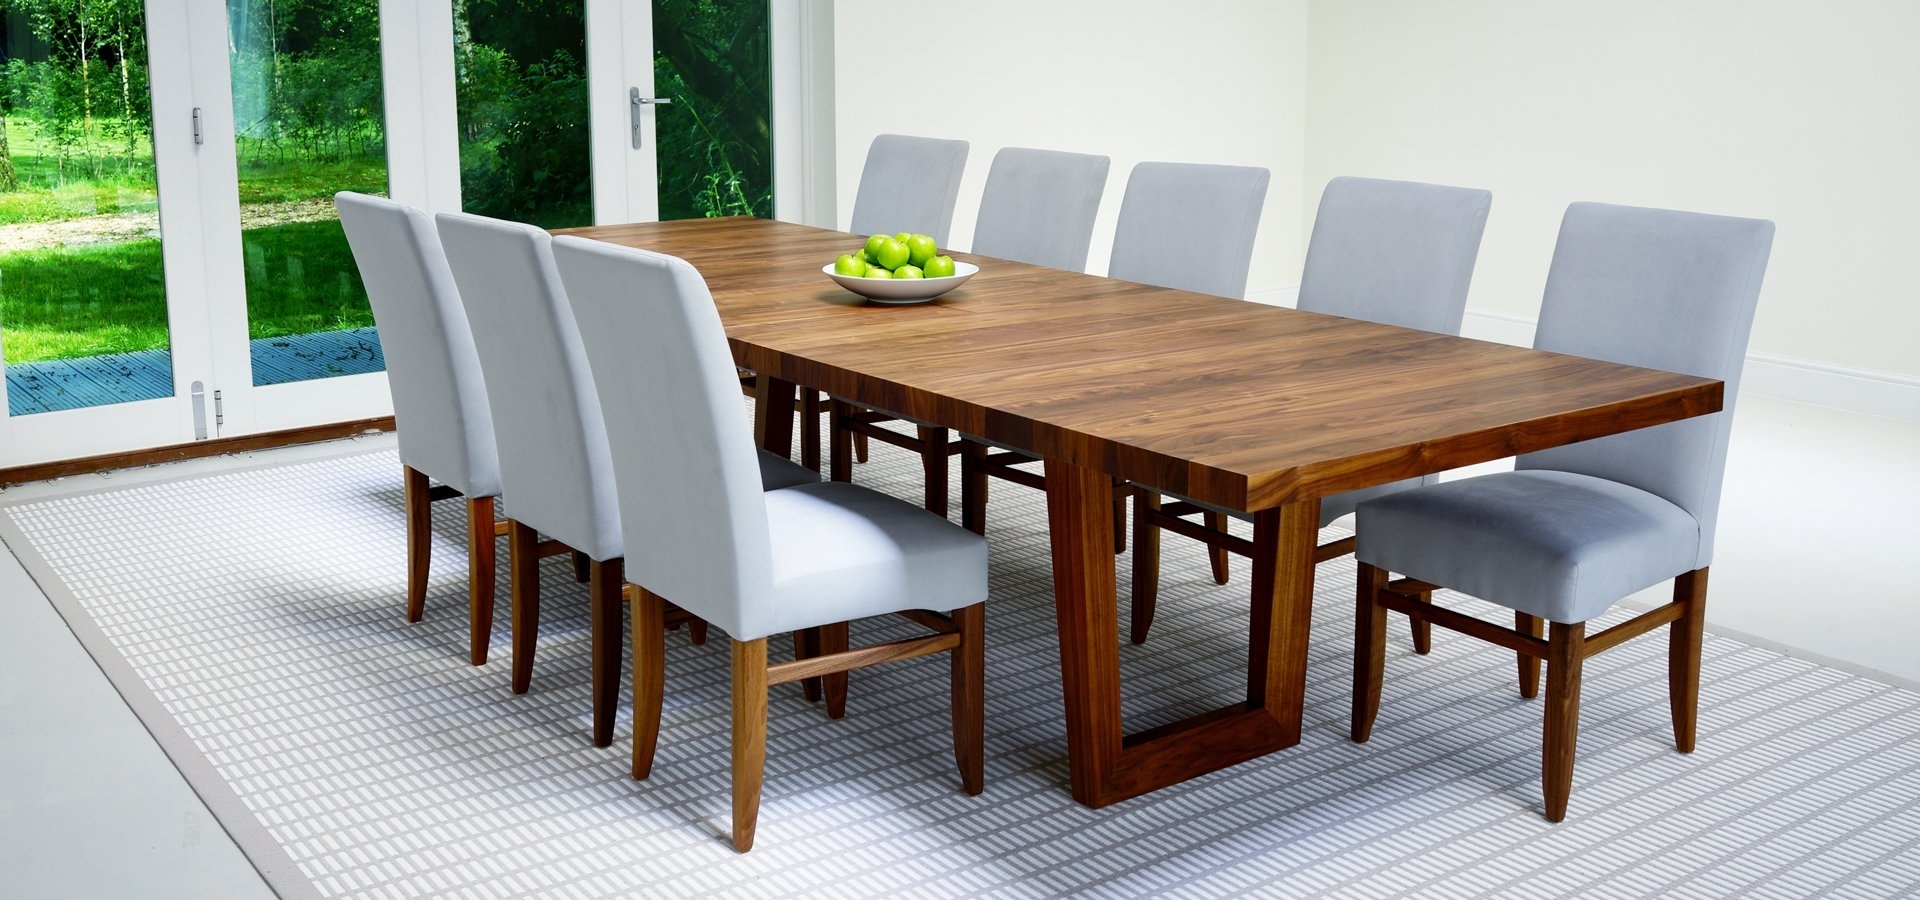 Fashionable Contemporary Dining Tables & Furnitureberrydesign (View 10 of 25)